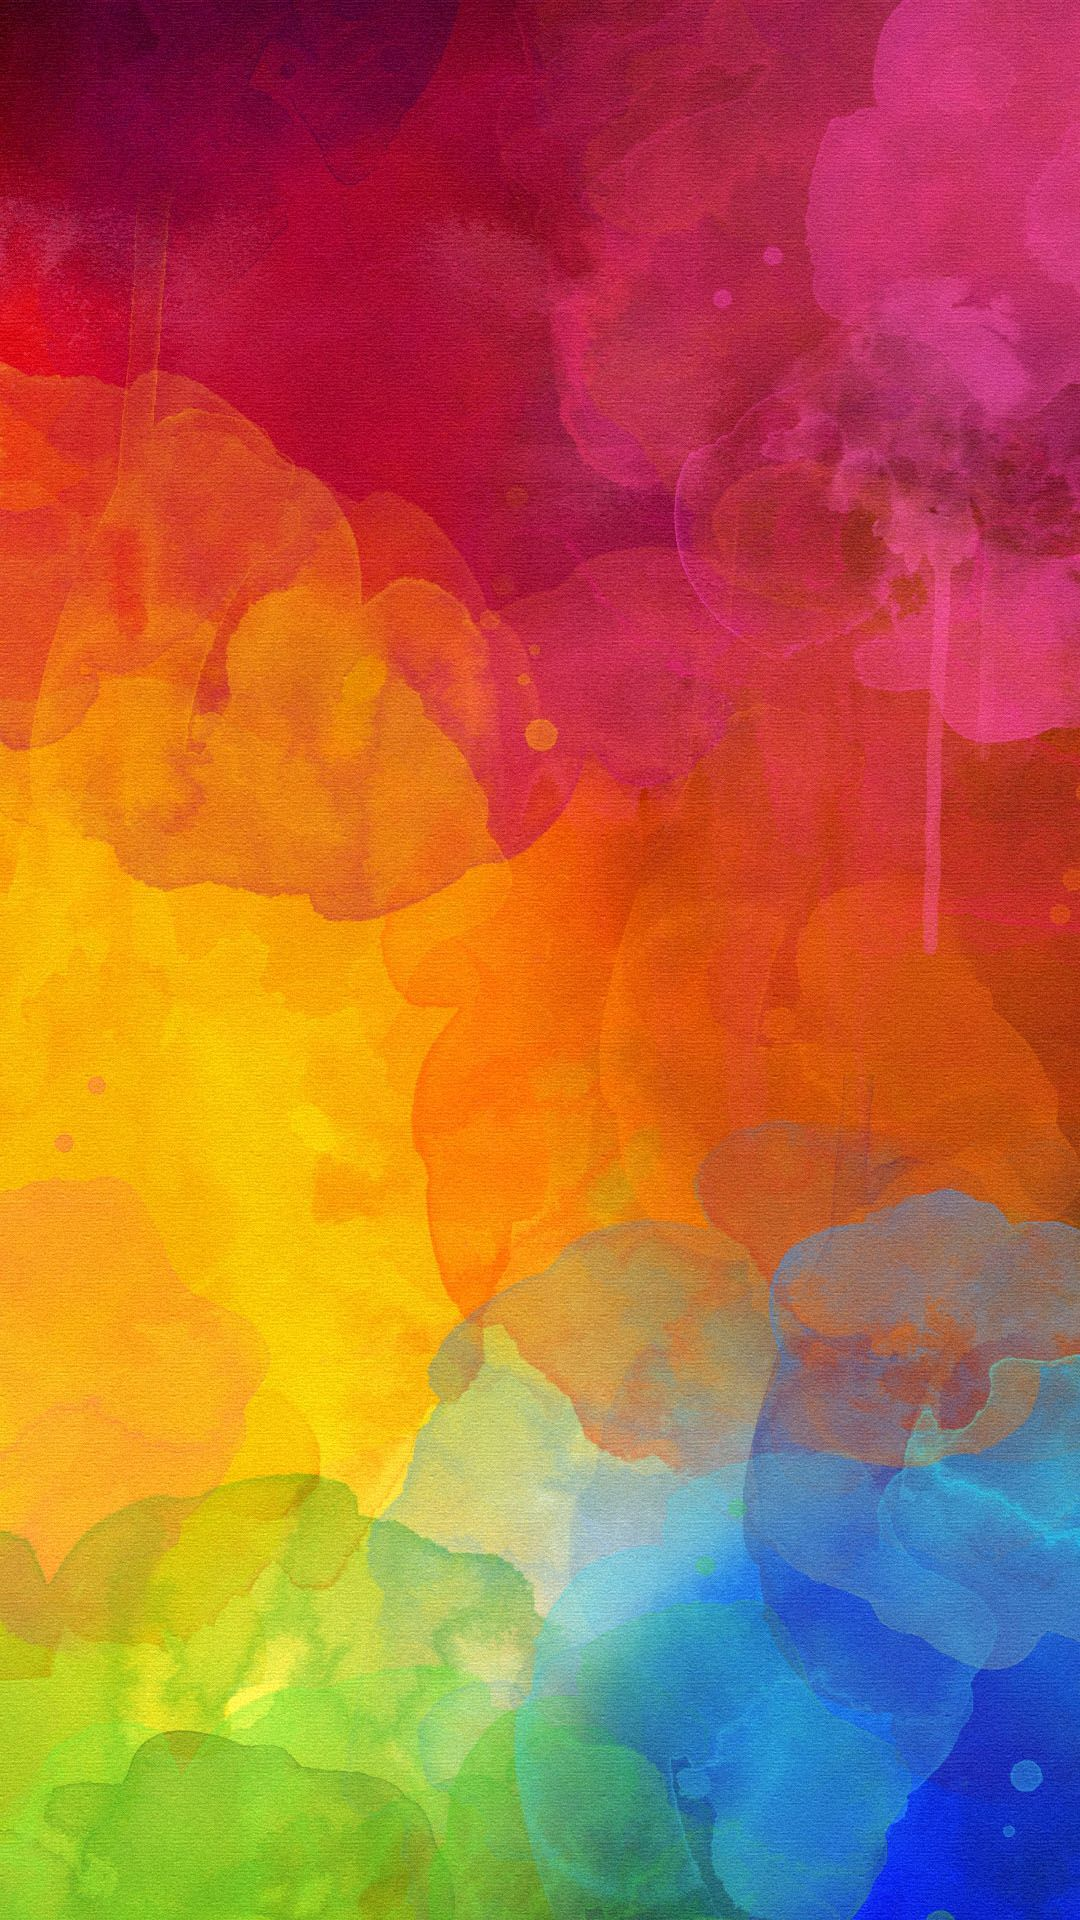 Apple iPhone wallpaper Android mobile wallpaper